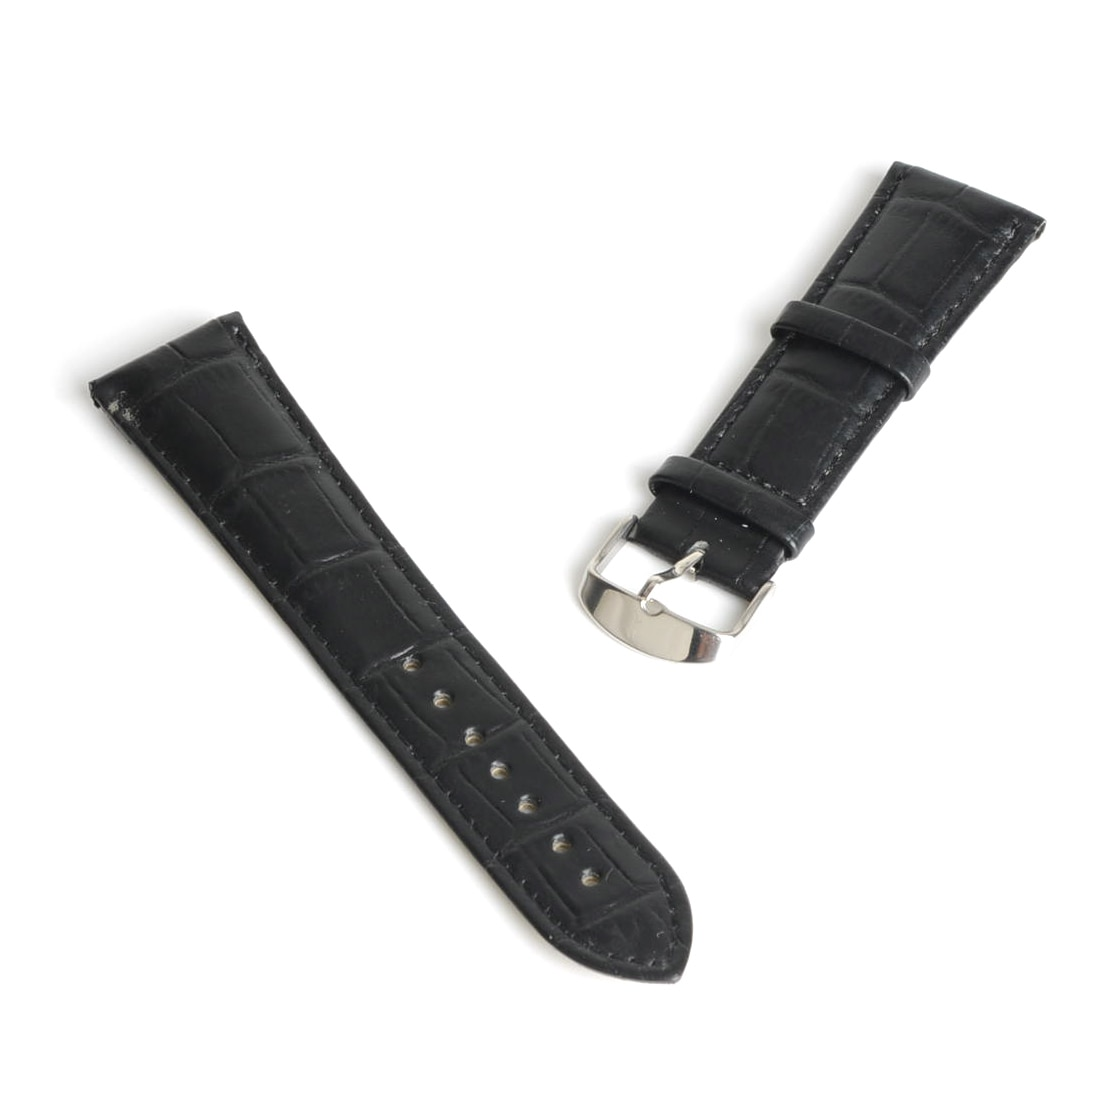 22mm Durable Black Genuine Leather Watch Band Strap Alloy Buckle Watchband Men Boy Gift SB0476